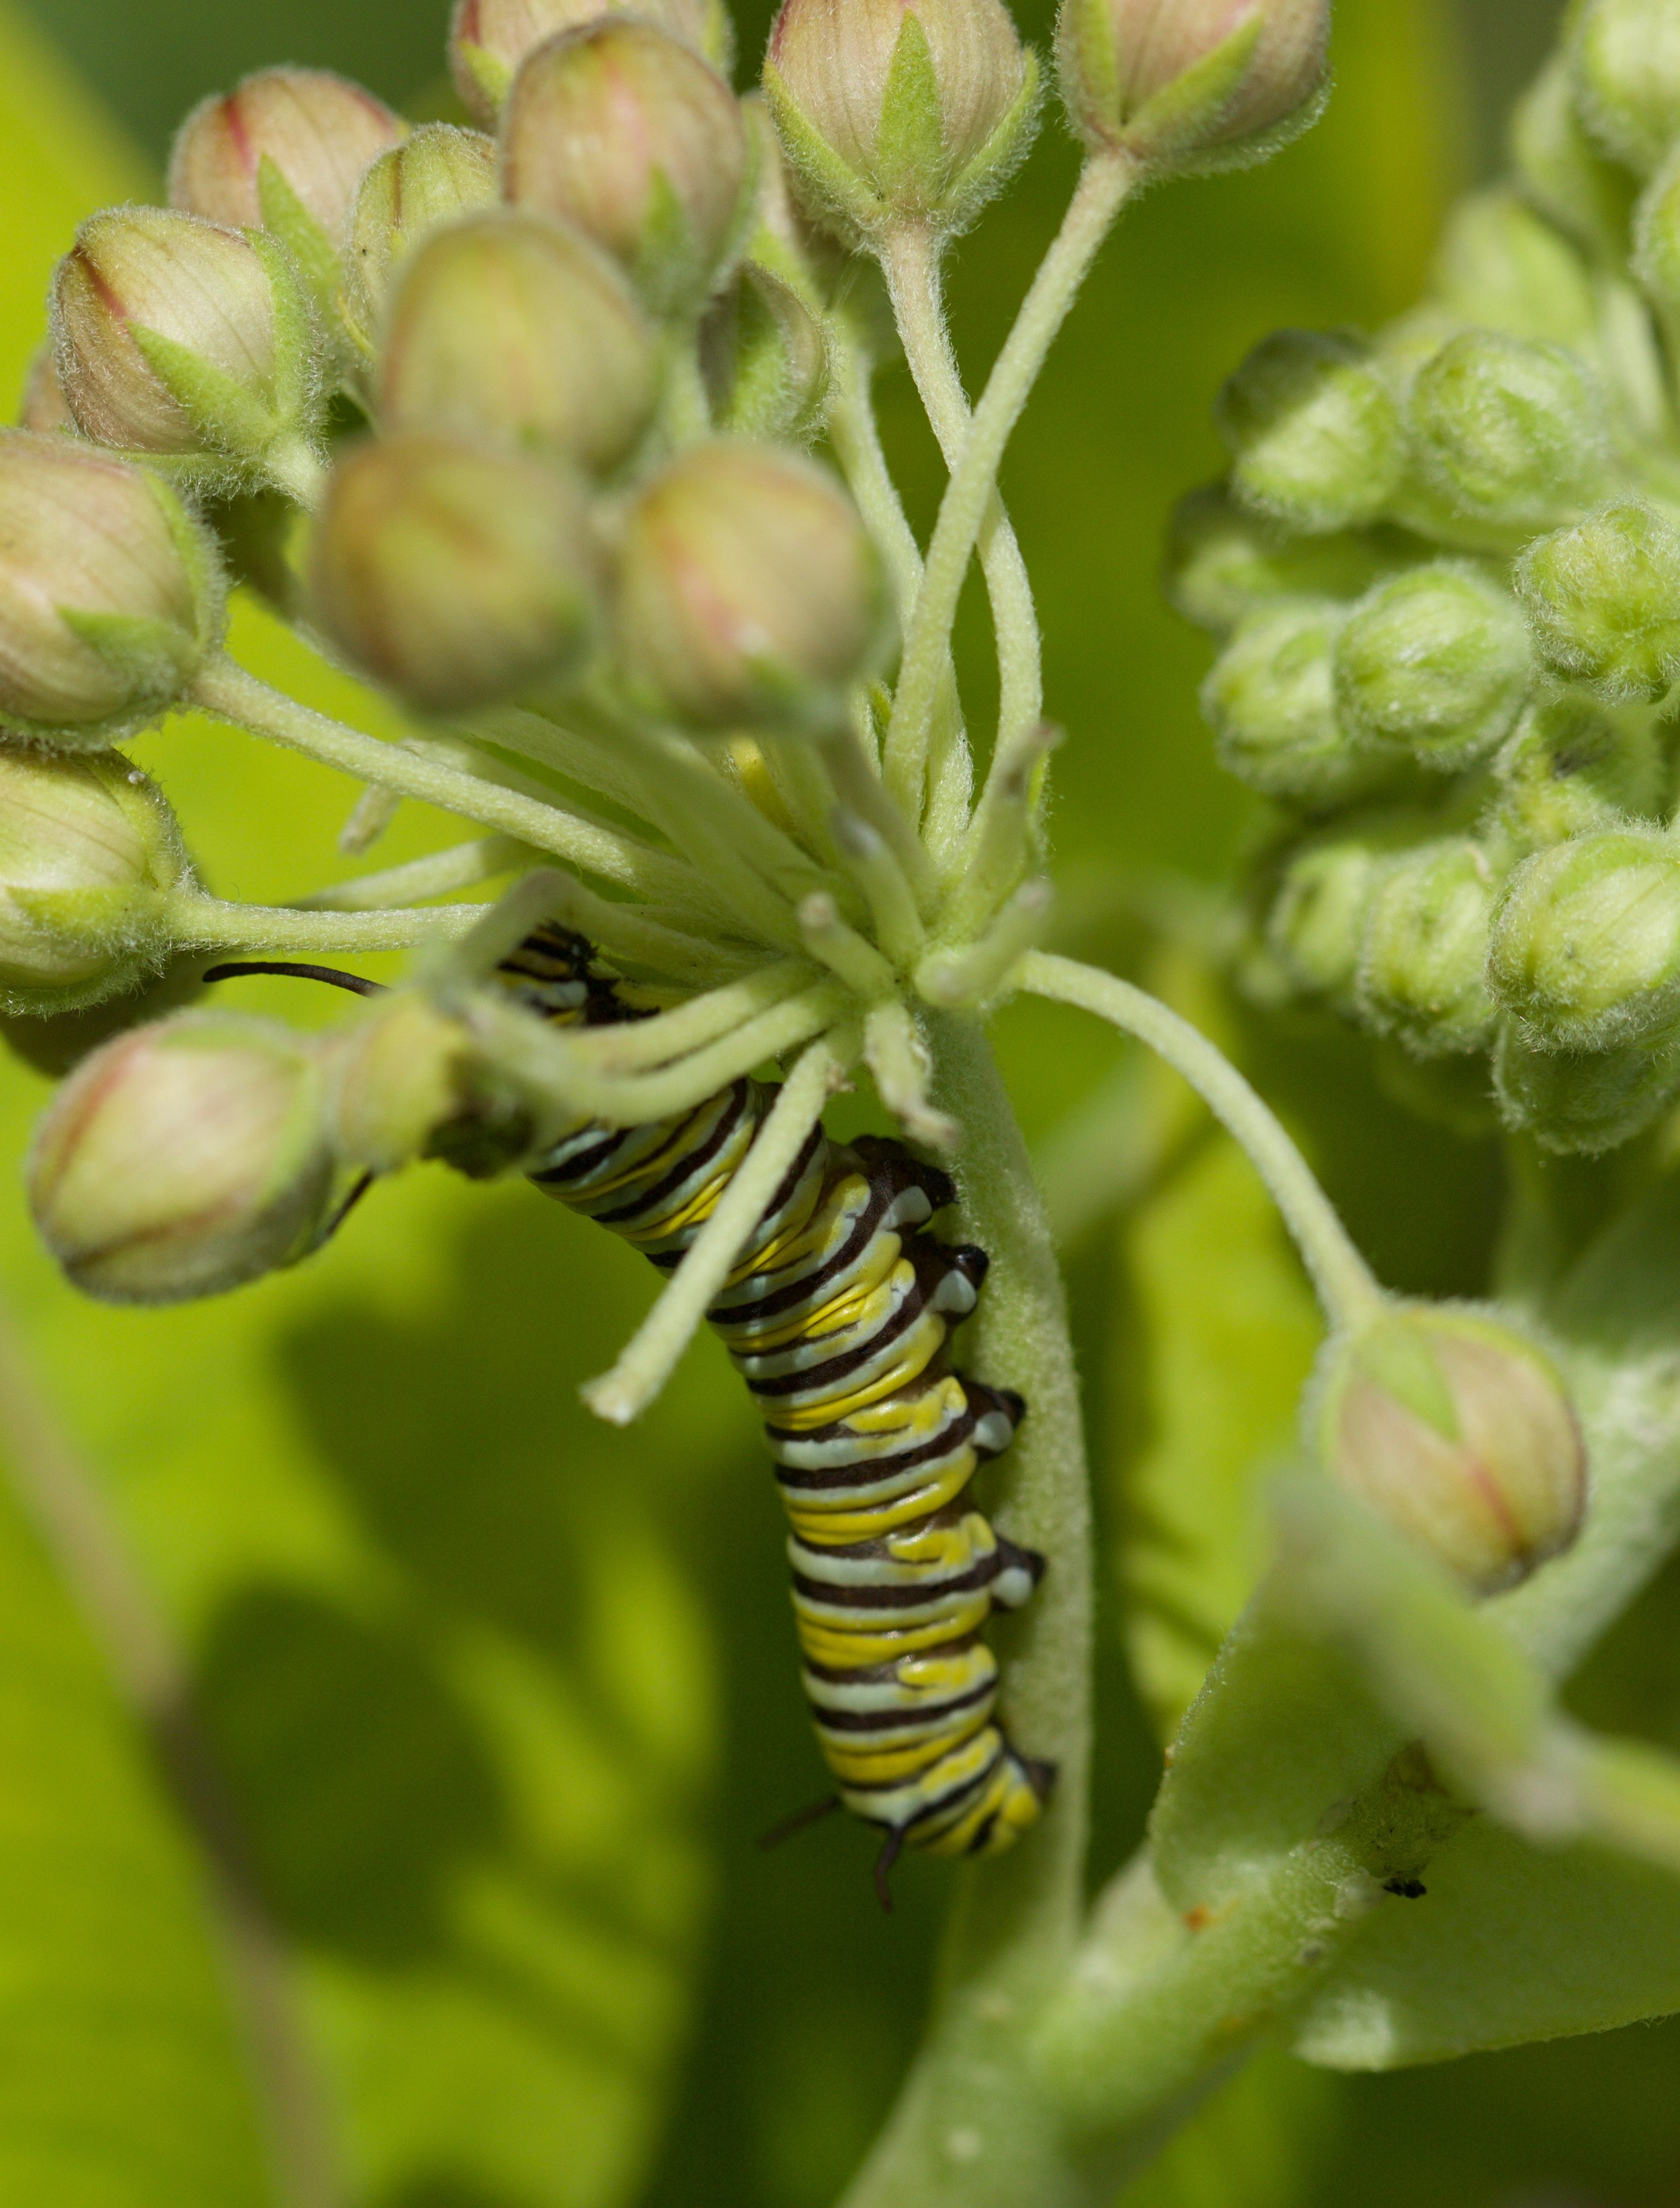 Monarch caterpillar on common milkweed. Photo by Arlene Koziol.  Download